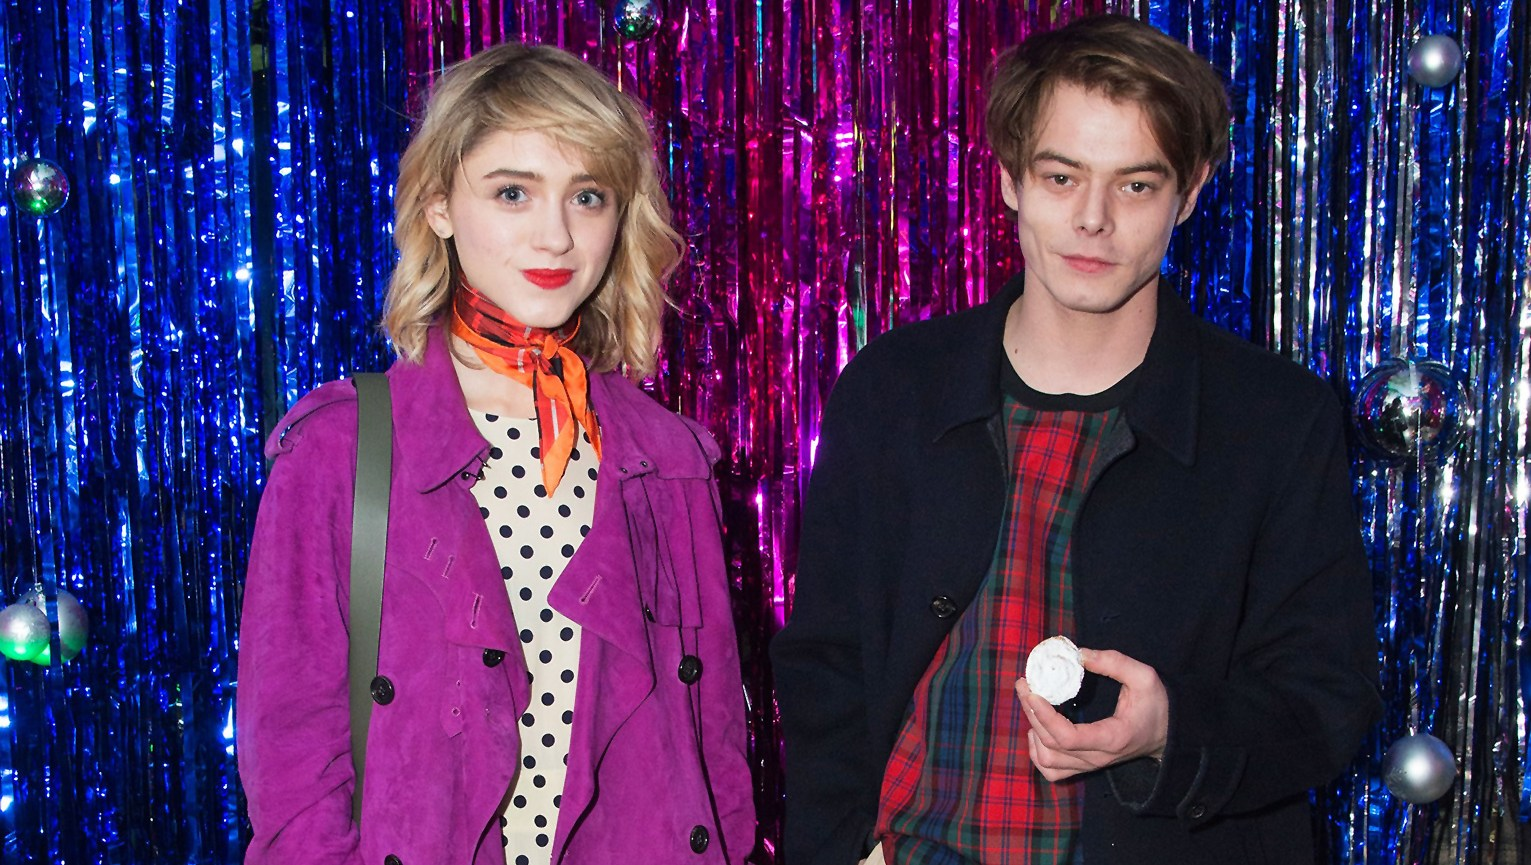 Natalia Dyer, Charlie Heaton, Netflix, Stranger Things, Couple, Burberry x Cara Delevingne Christmas Party